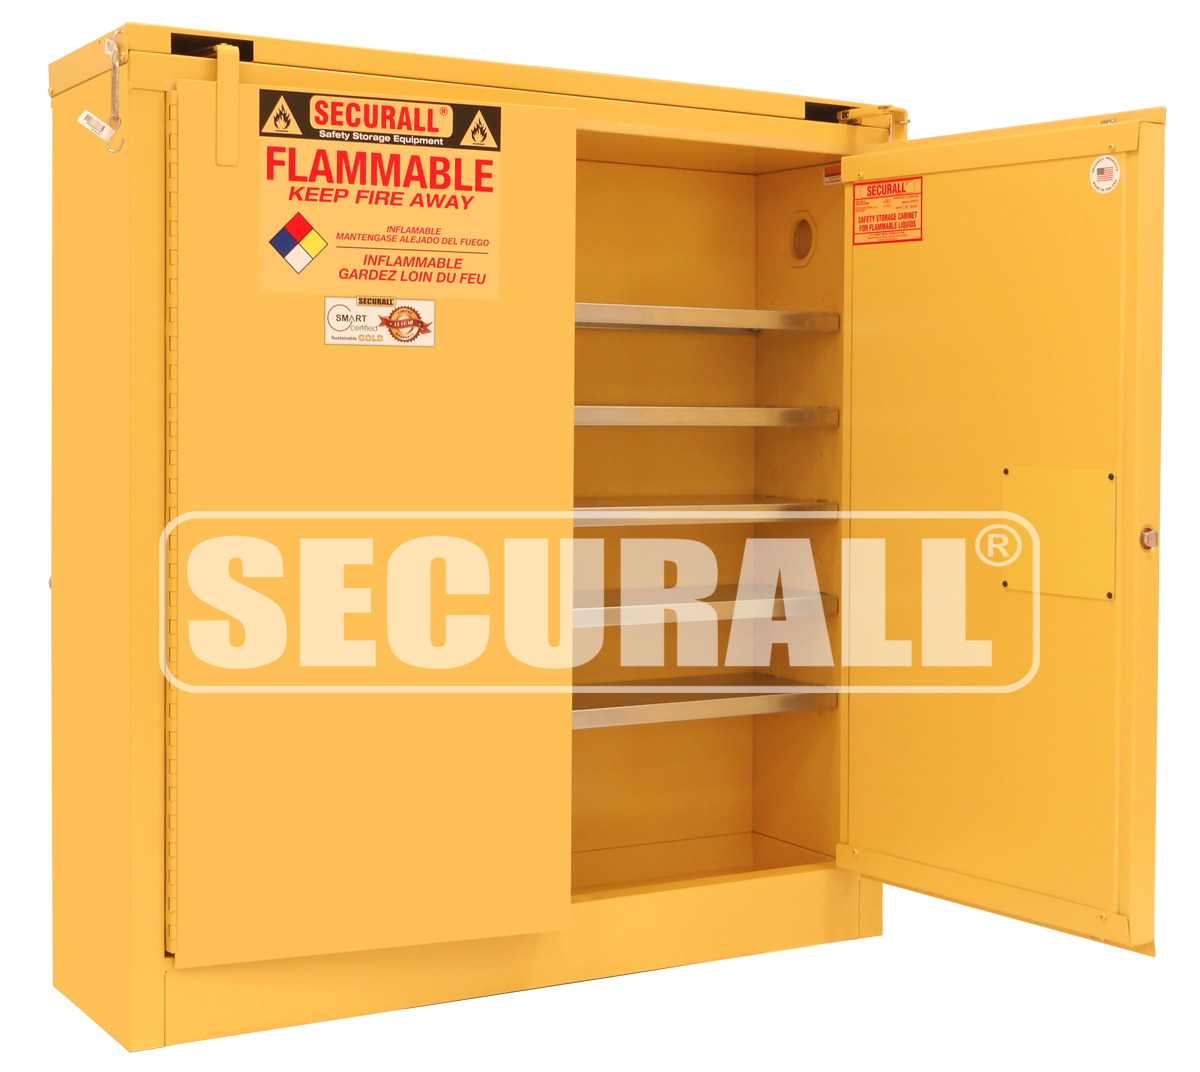 Securall 174 Wall Mounted Storage Cabinets Wall Mountable